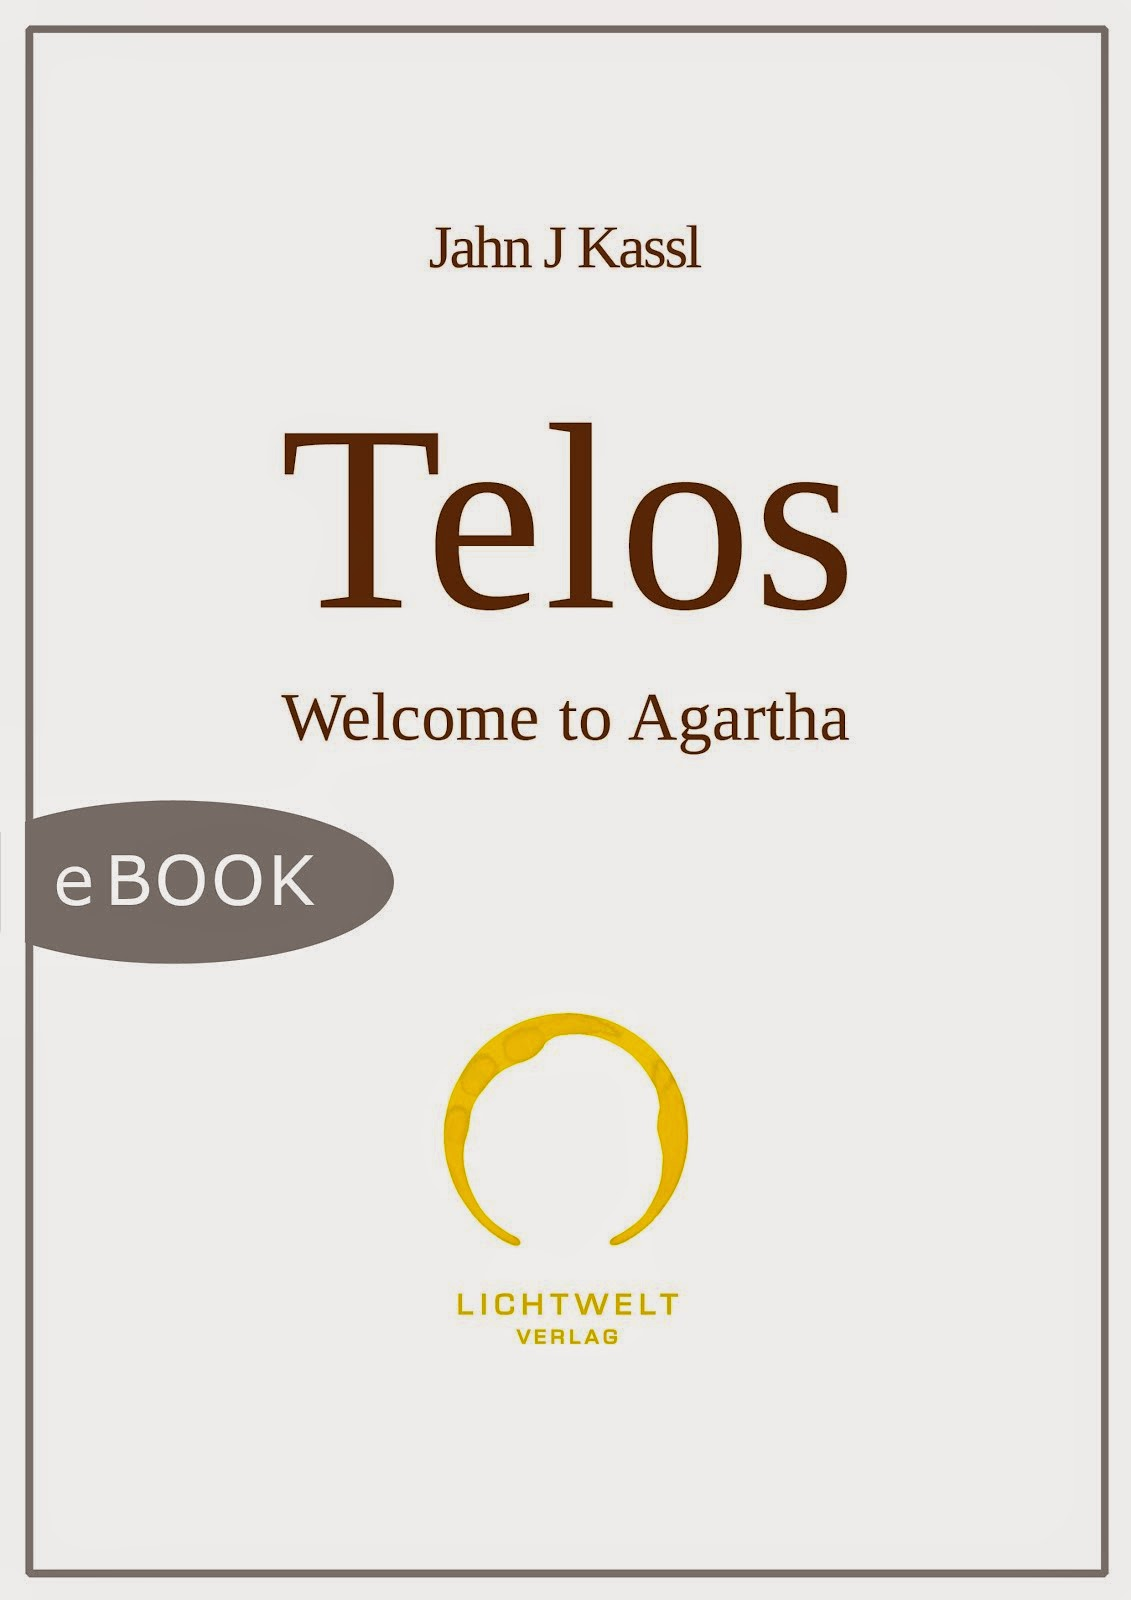 TELOS, Welcome to Agartha - JJK (digital publication)